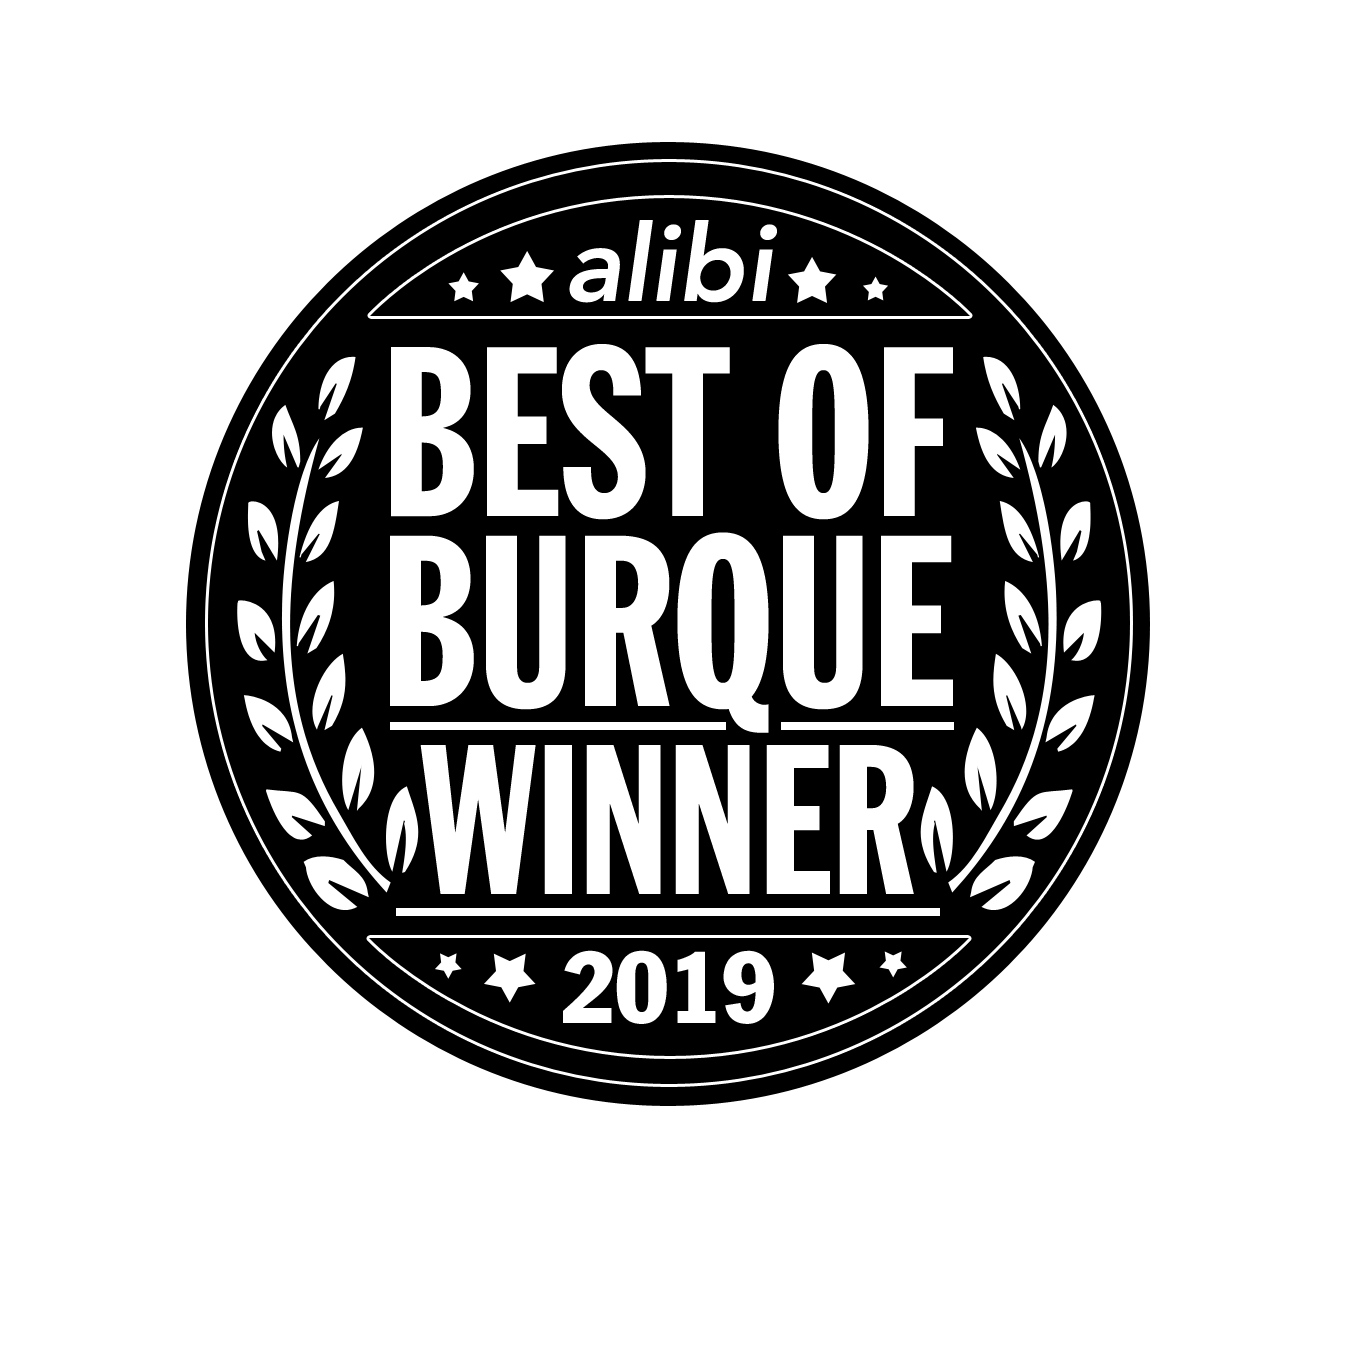 Best of Burque 2019 Winner Badge